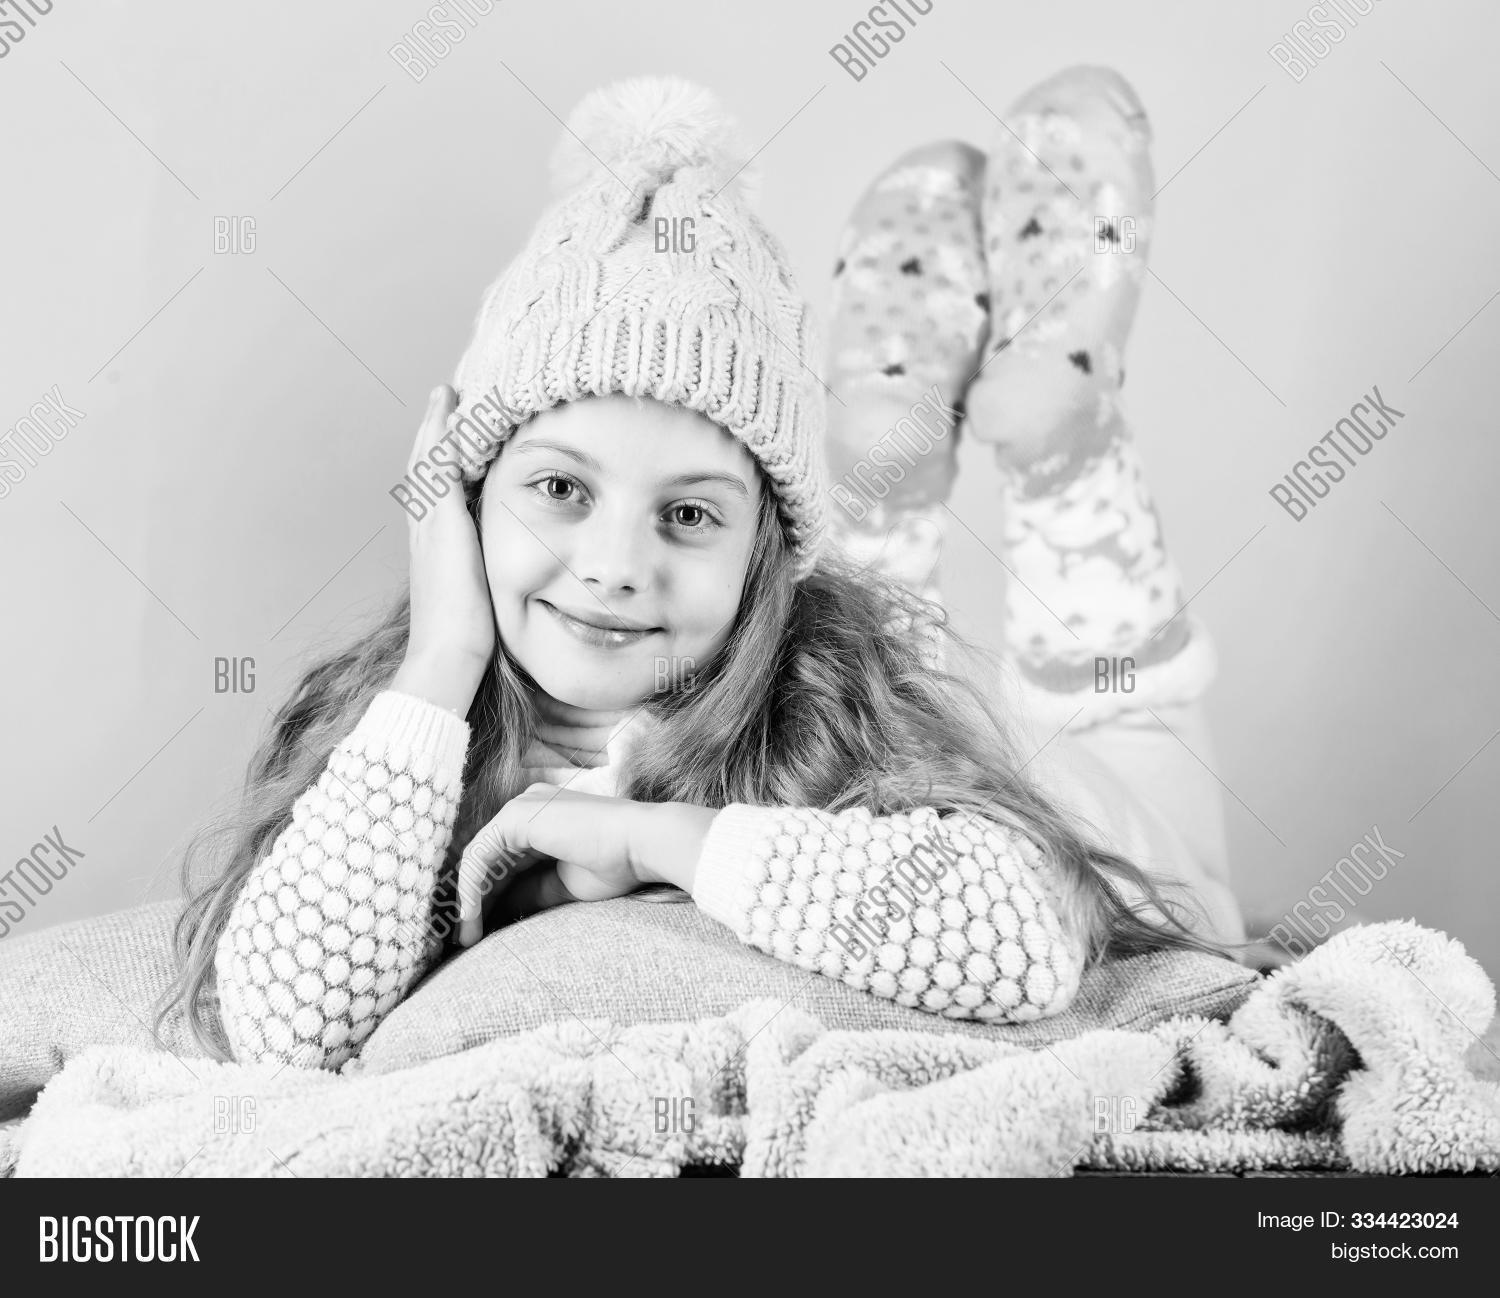 accessory,adorable,autumn,autumnal,baby,background,beauty,care,caucasian,child,childhood,clothes,cold,comfortable,concept,cozy,cute,detail,dream,dreamy,face,fall,fashion,fashionable,girl,hair,hat,kid,knitted,leisure,long,pink,relax,rest,scarf,season,seasonal,small,style,stylish,trend,wardrobe,warm,wear,weather,winter